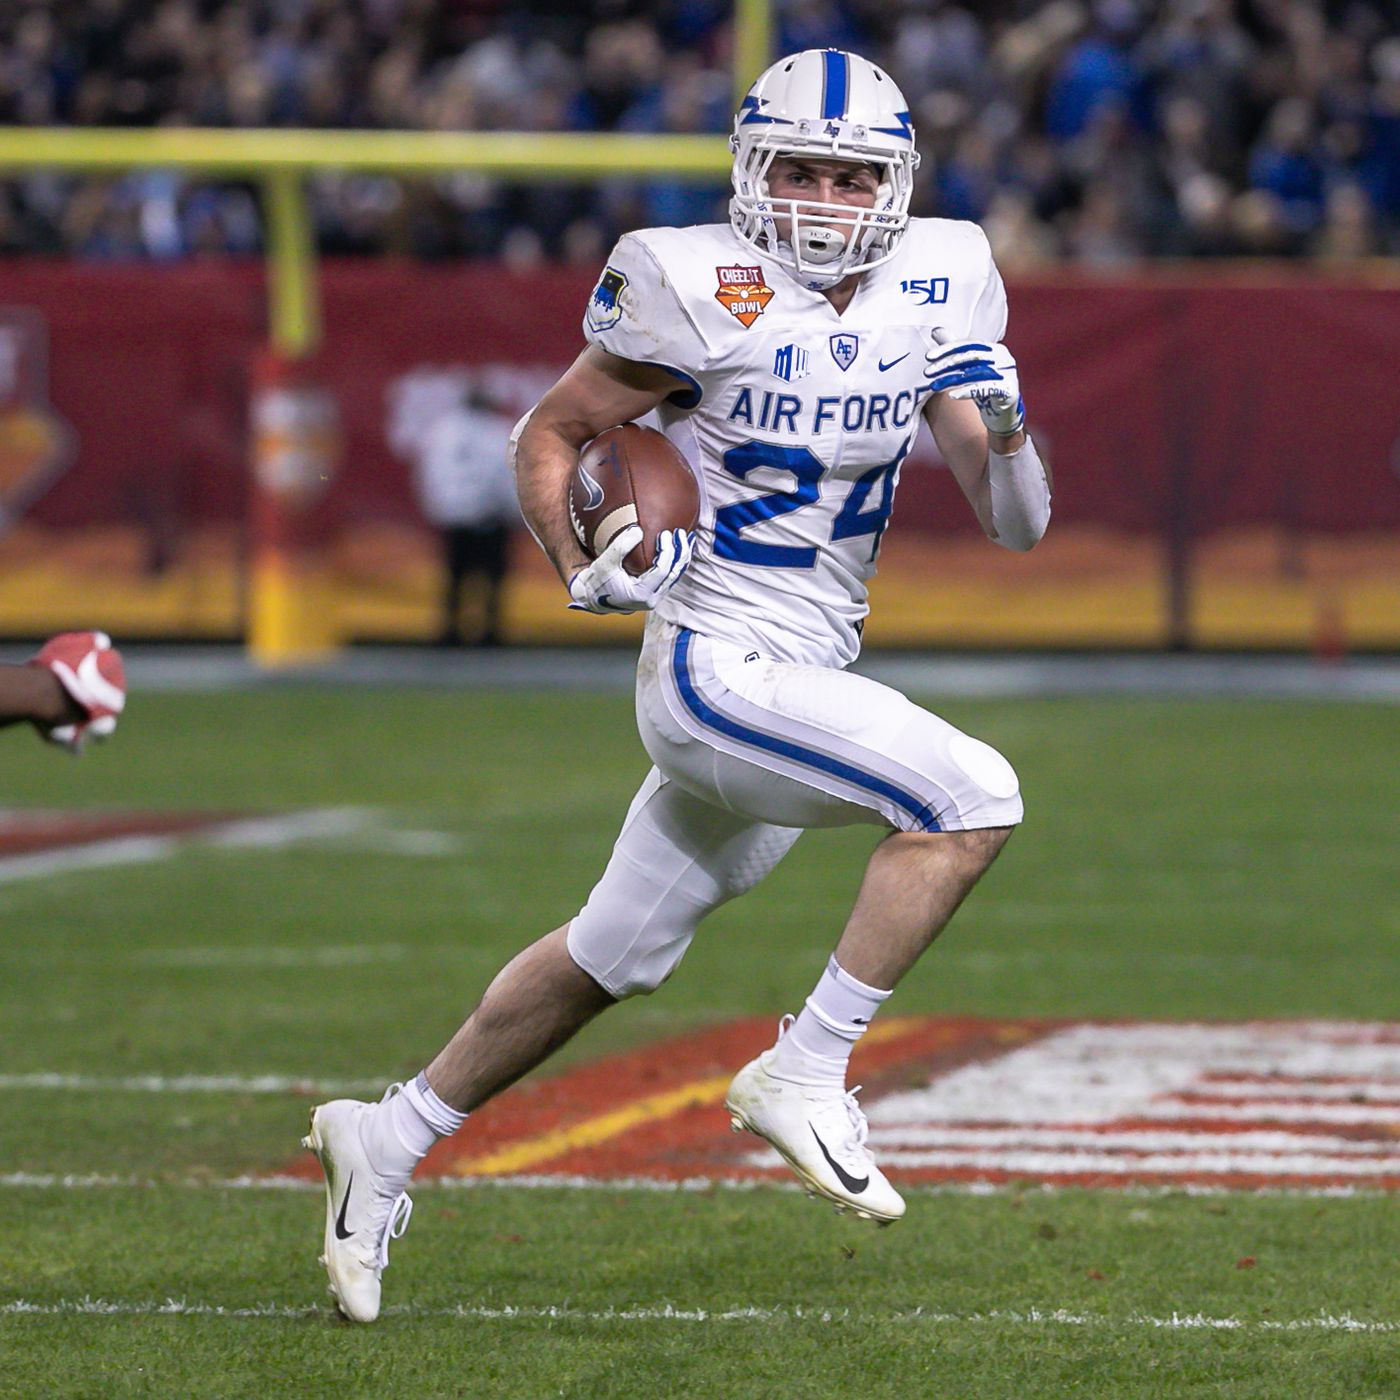 College Football Air Force Is Back But Questions Remain Against All Enemies